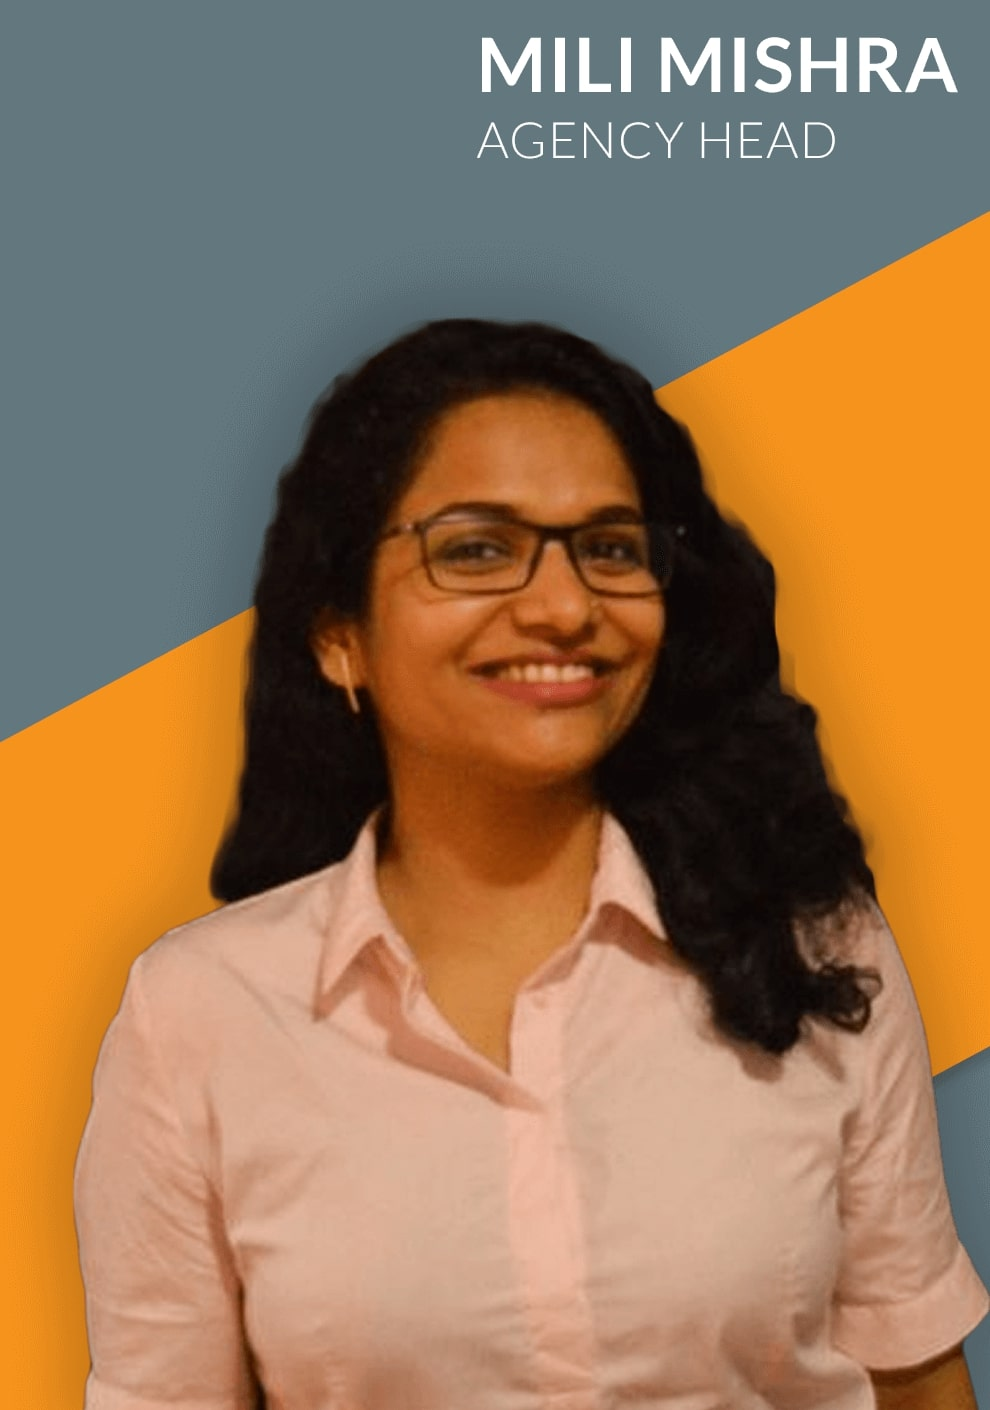 agency head - mili Mishra smiling and representing her team